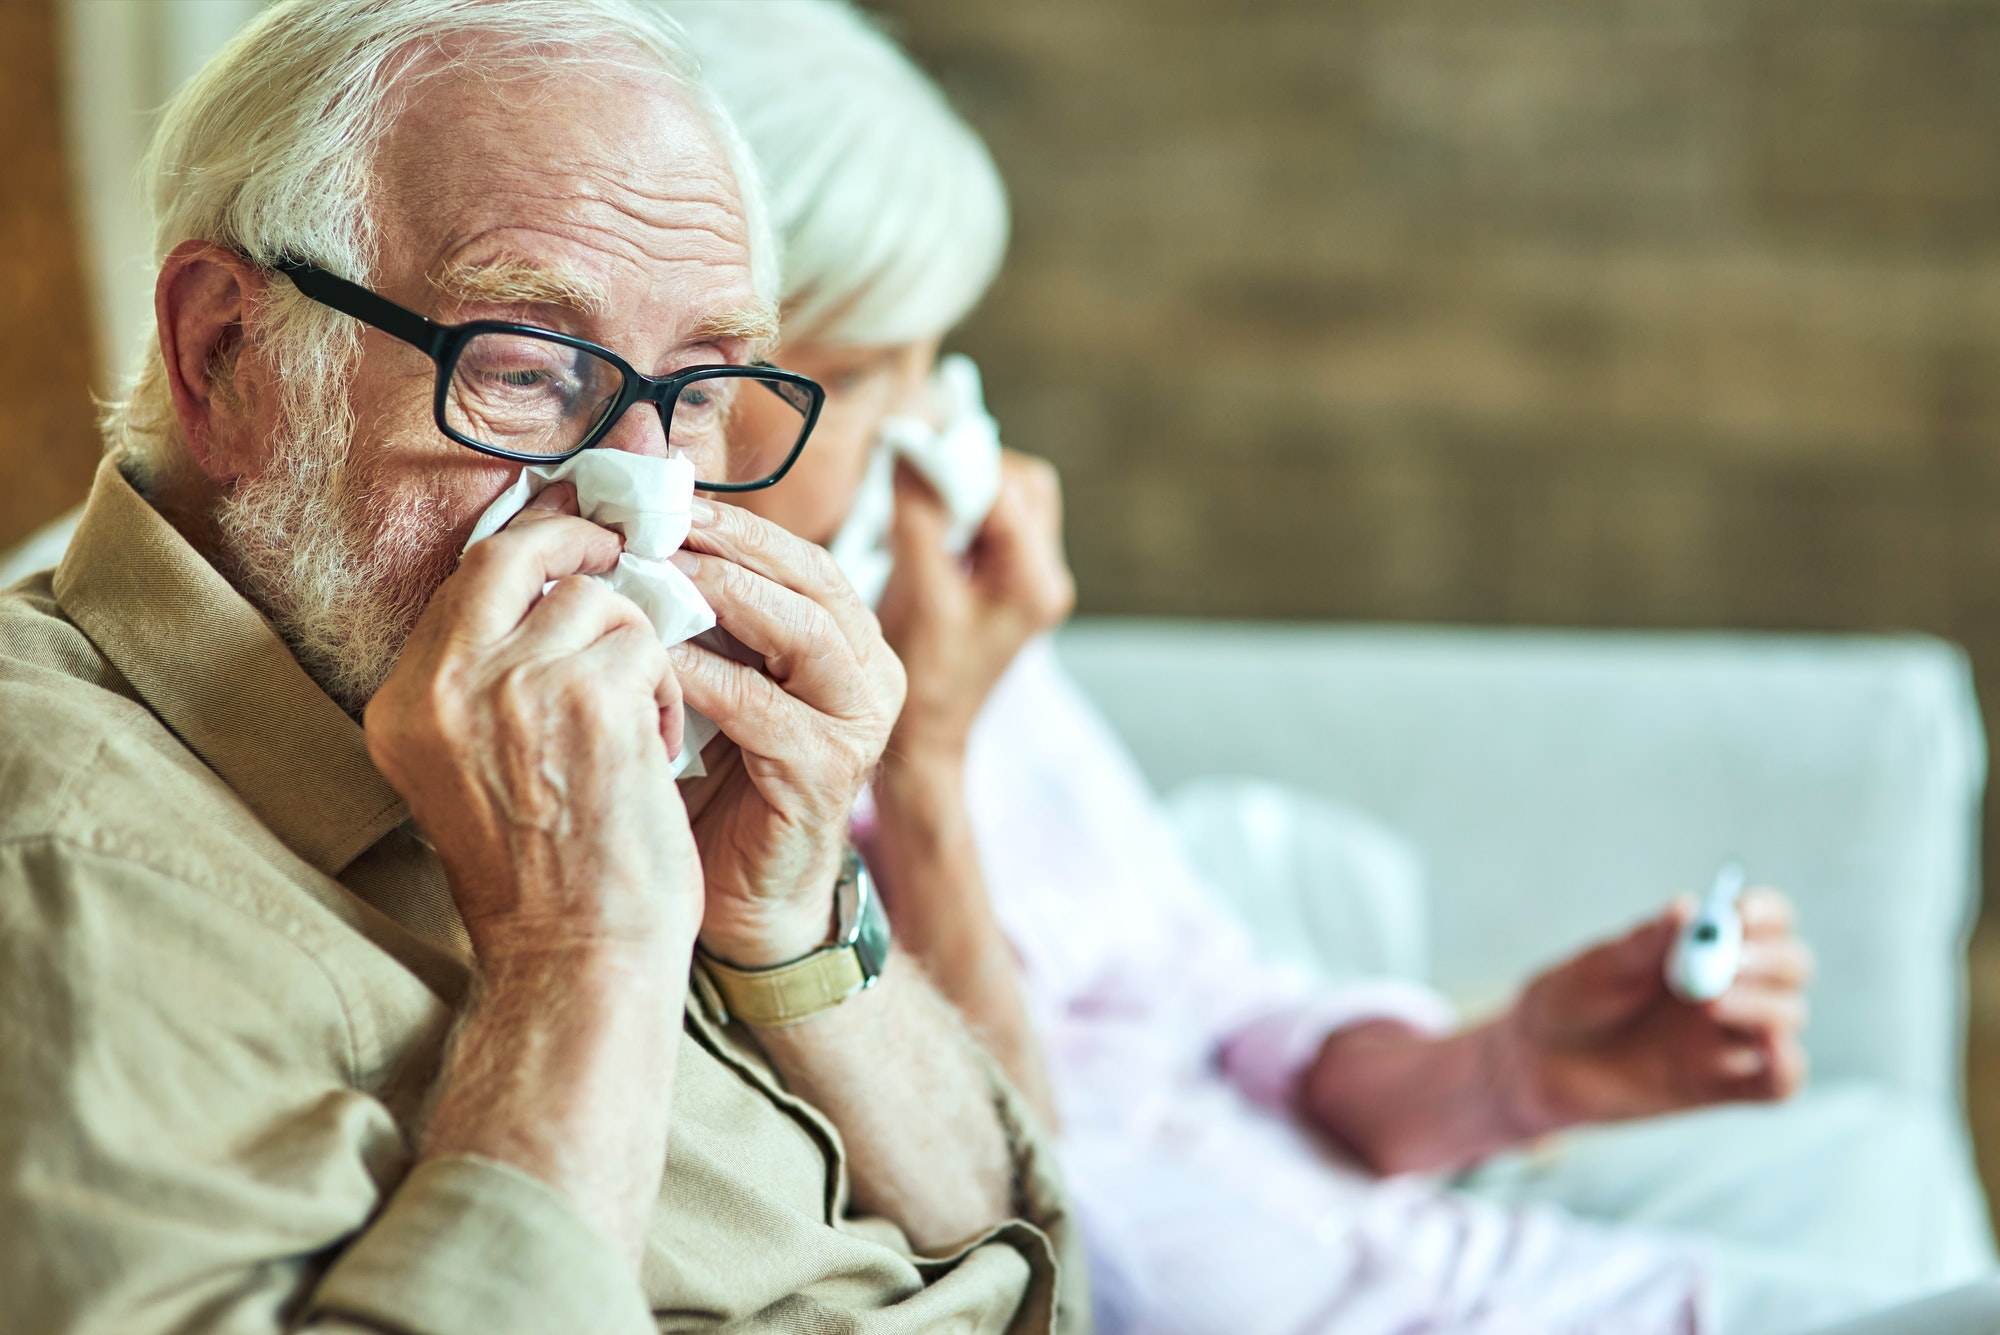 male retiree using paper napkins for a cold - ASSIN Brasil